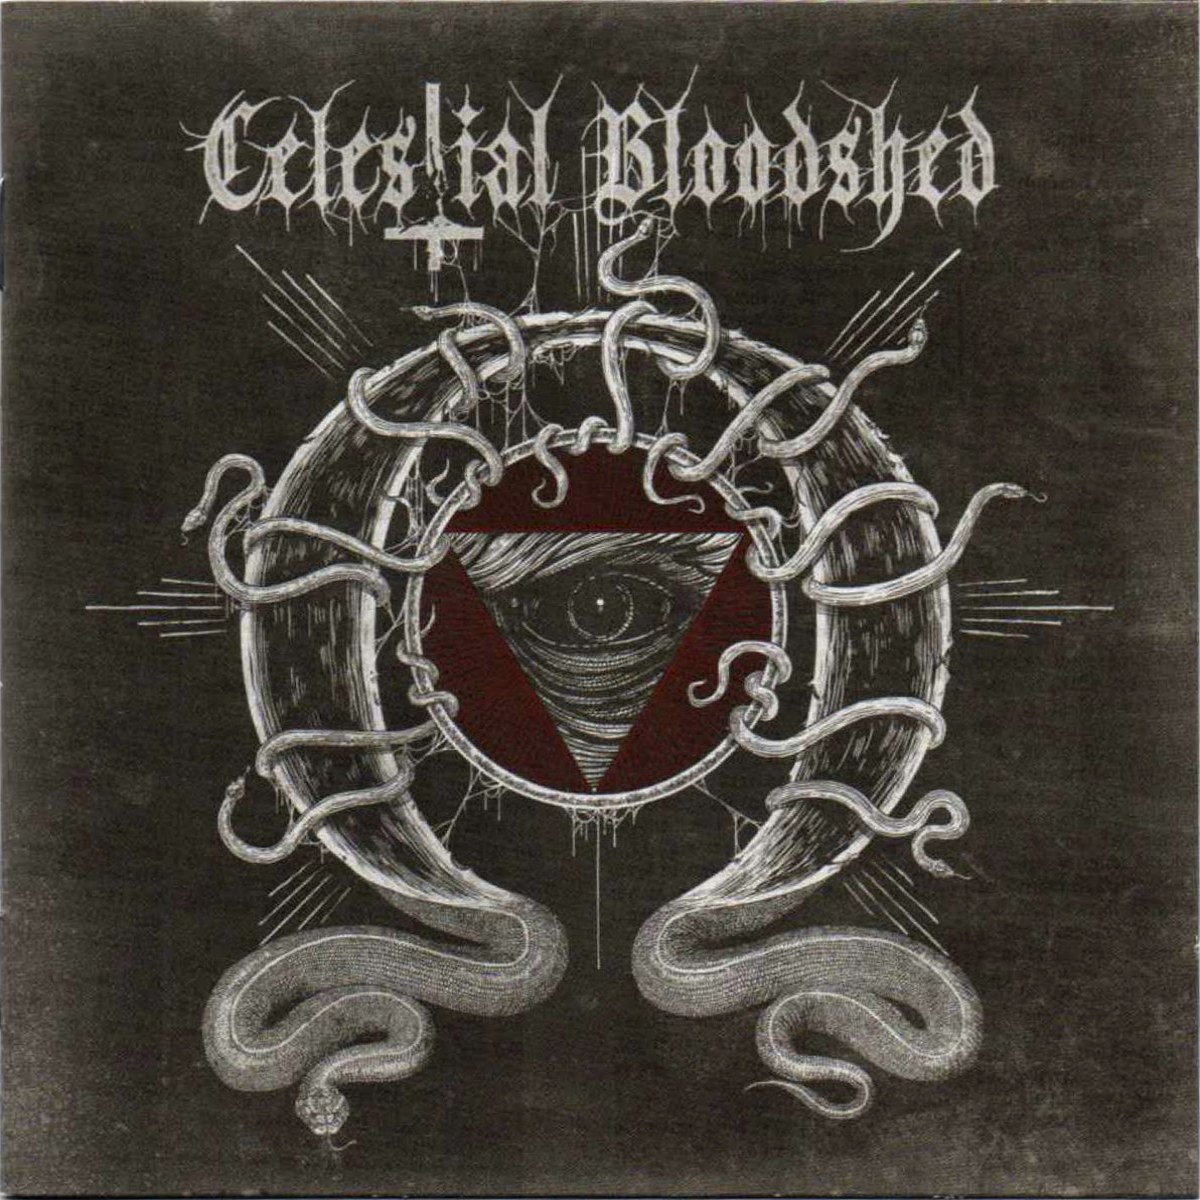 Review for Celestial Bloodshed - Ω